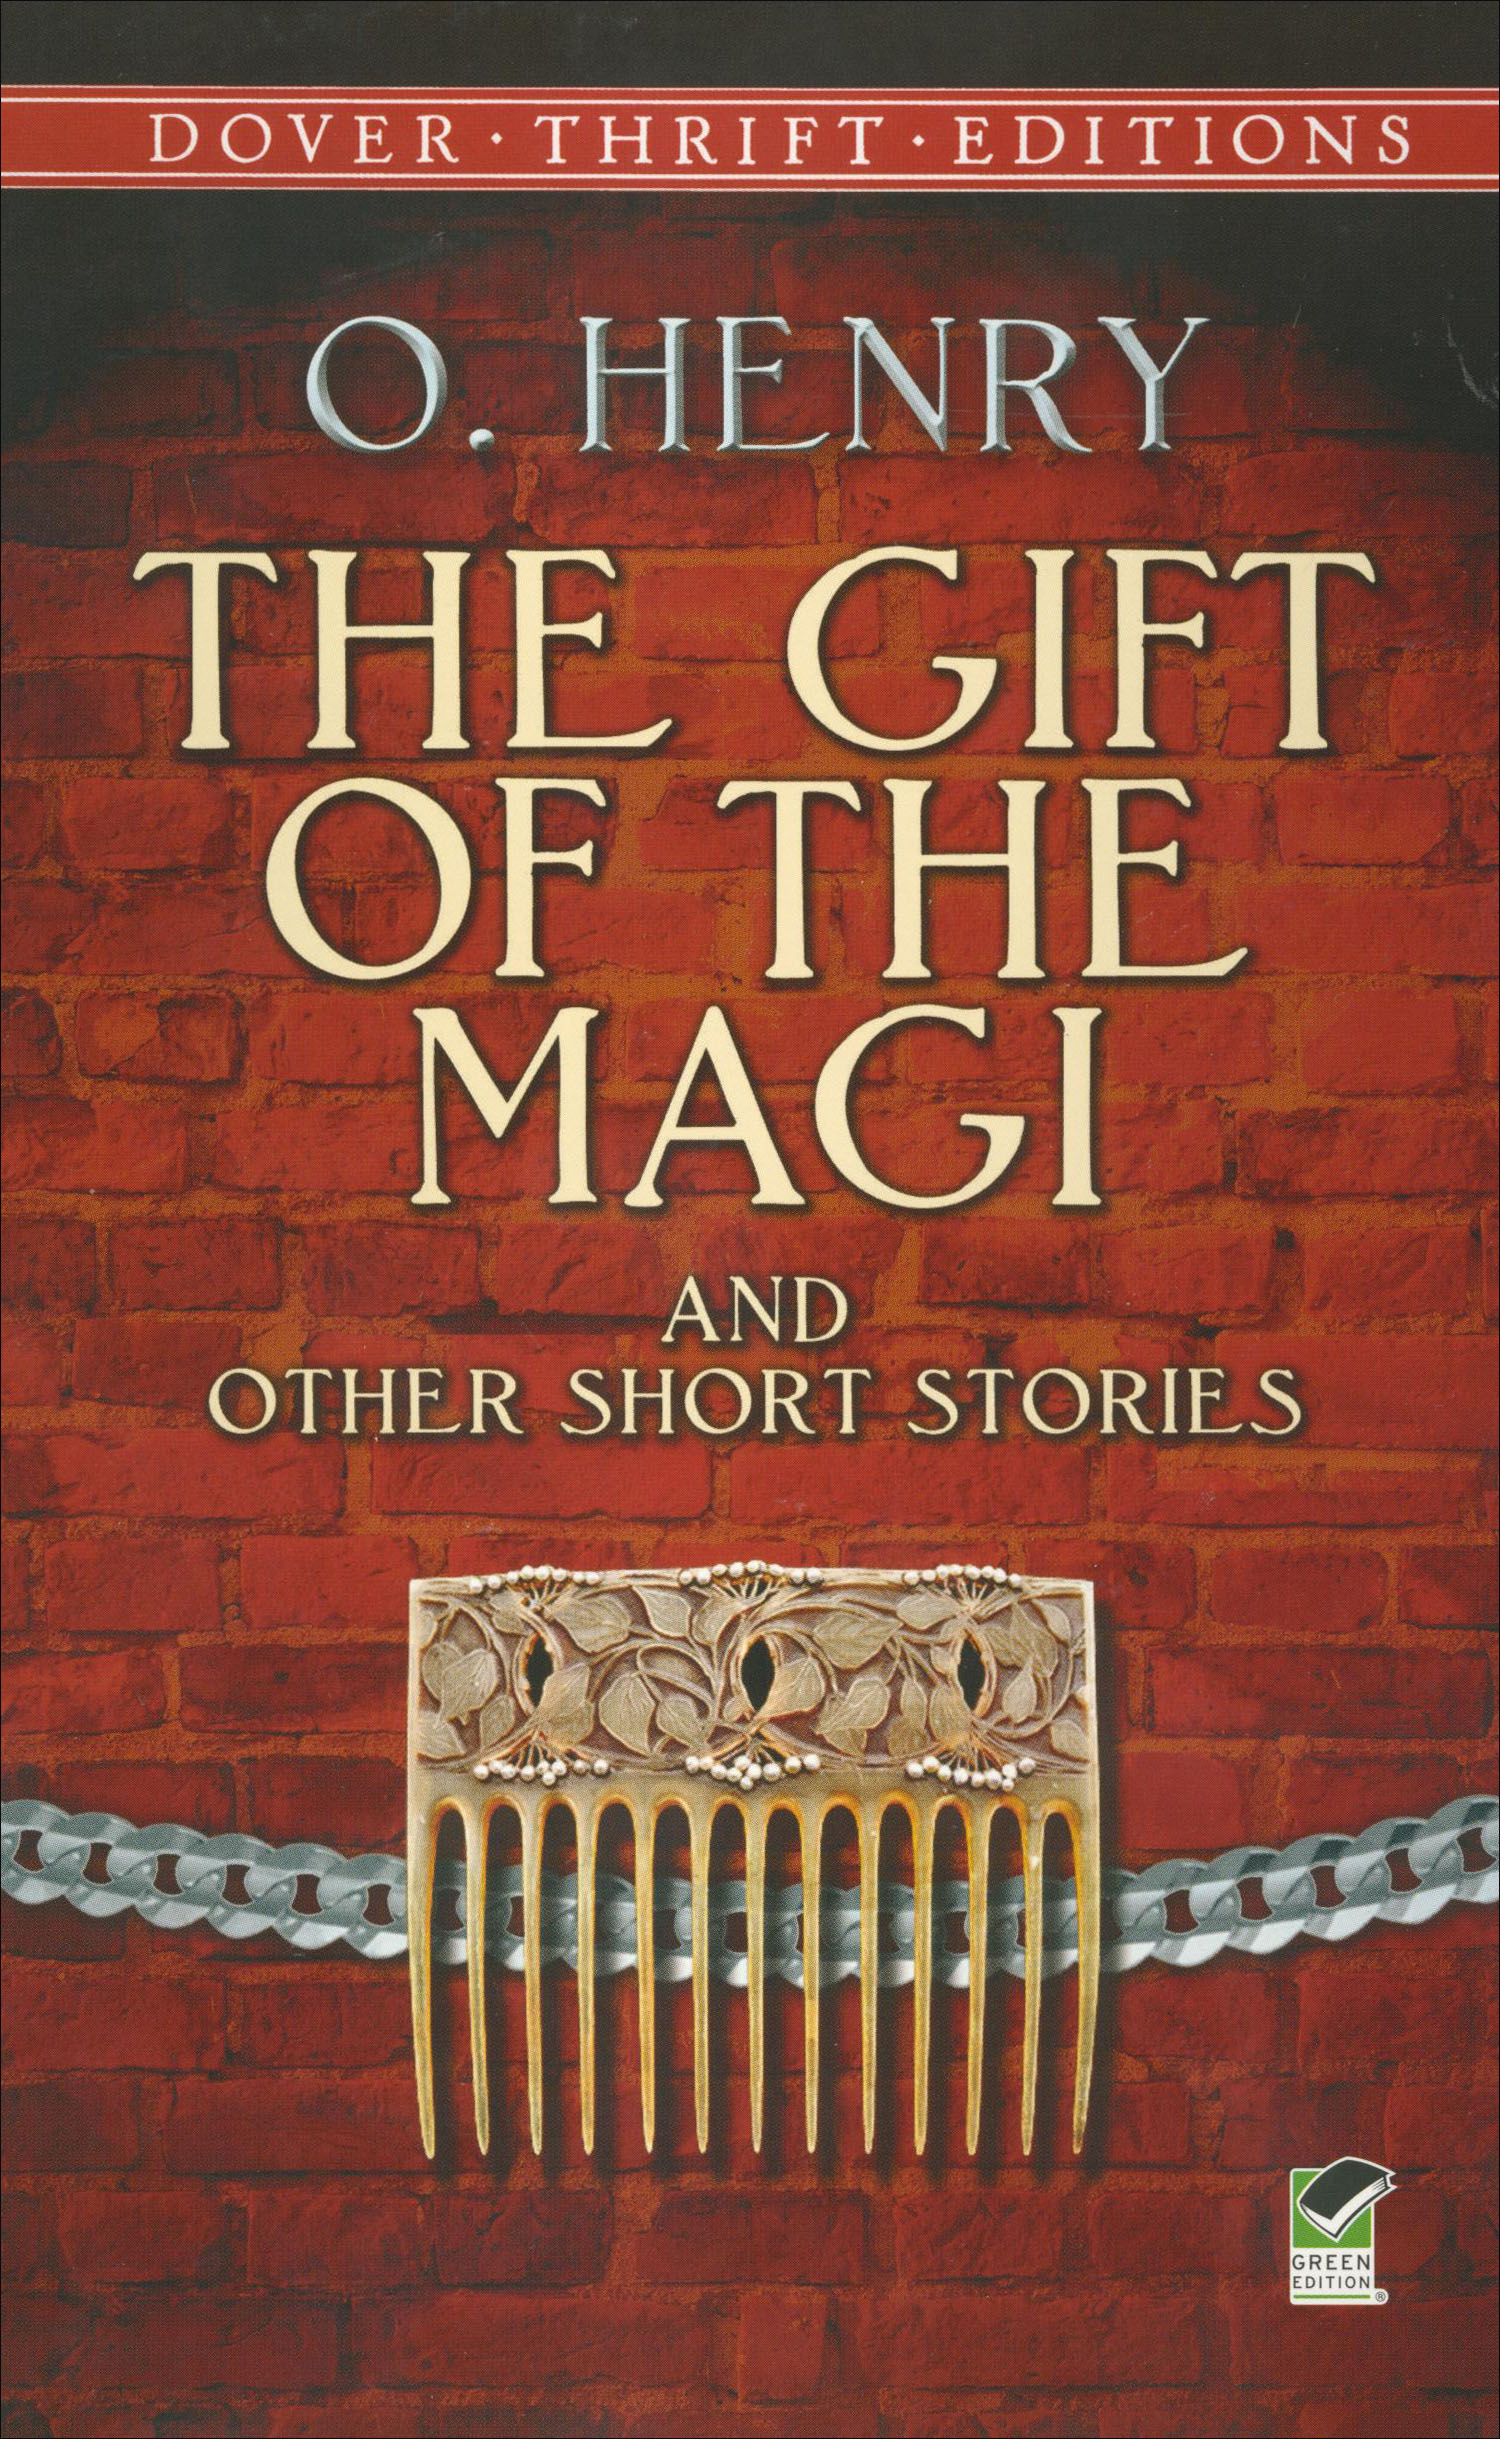 The Gift of the Magi and Other Short Stories Paperback Book (940L)